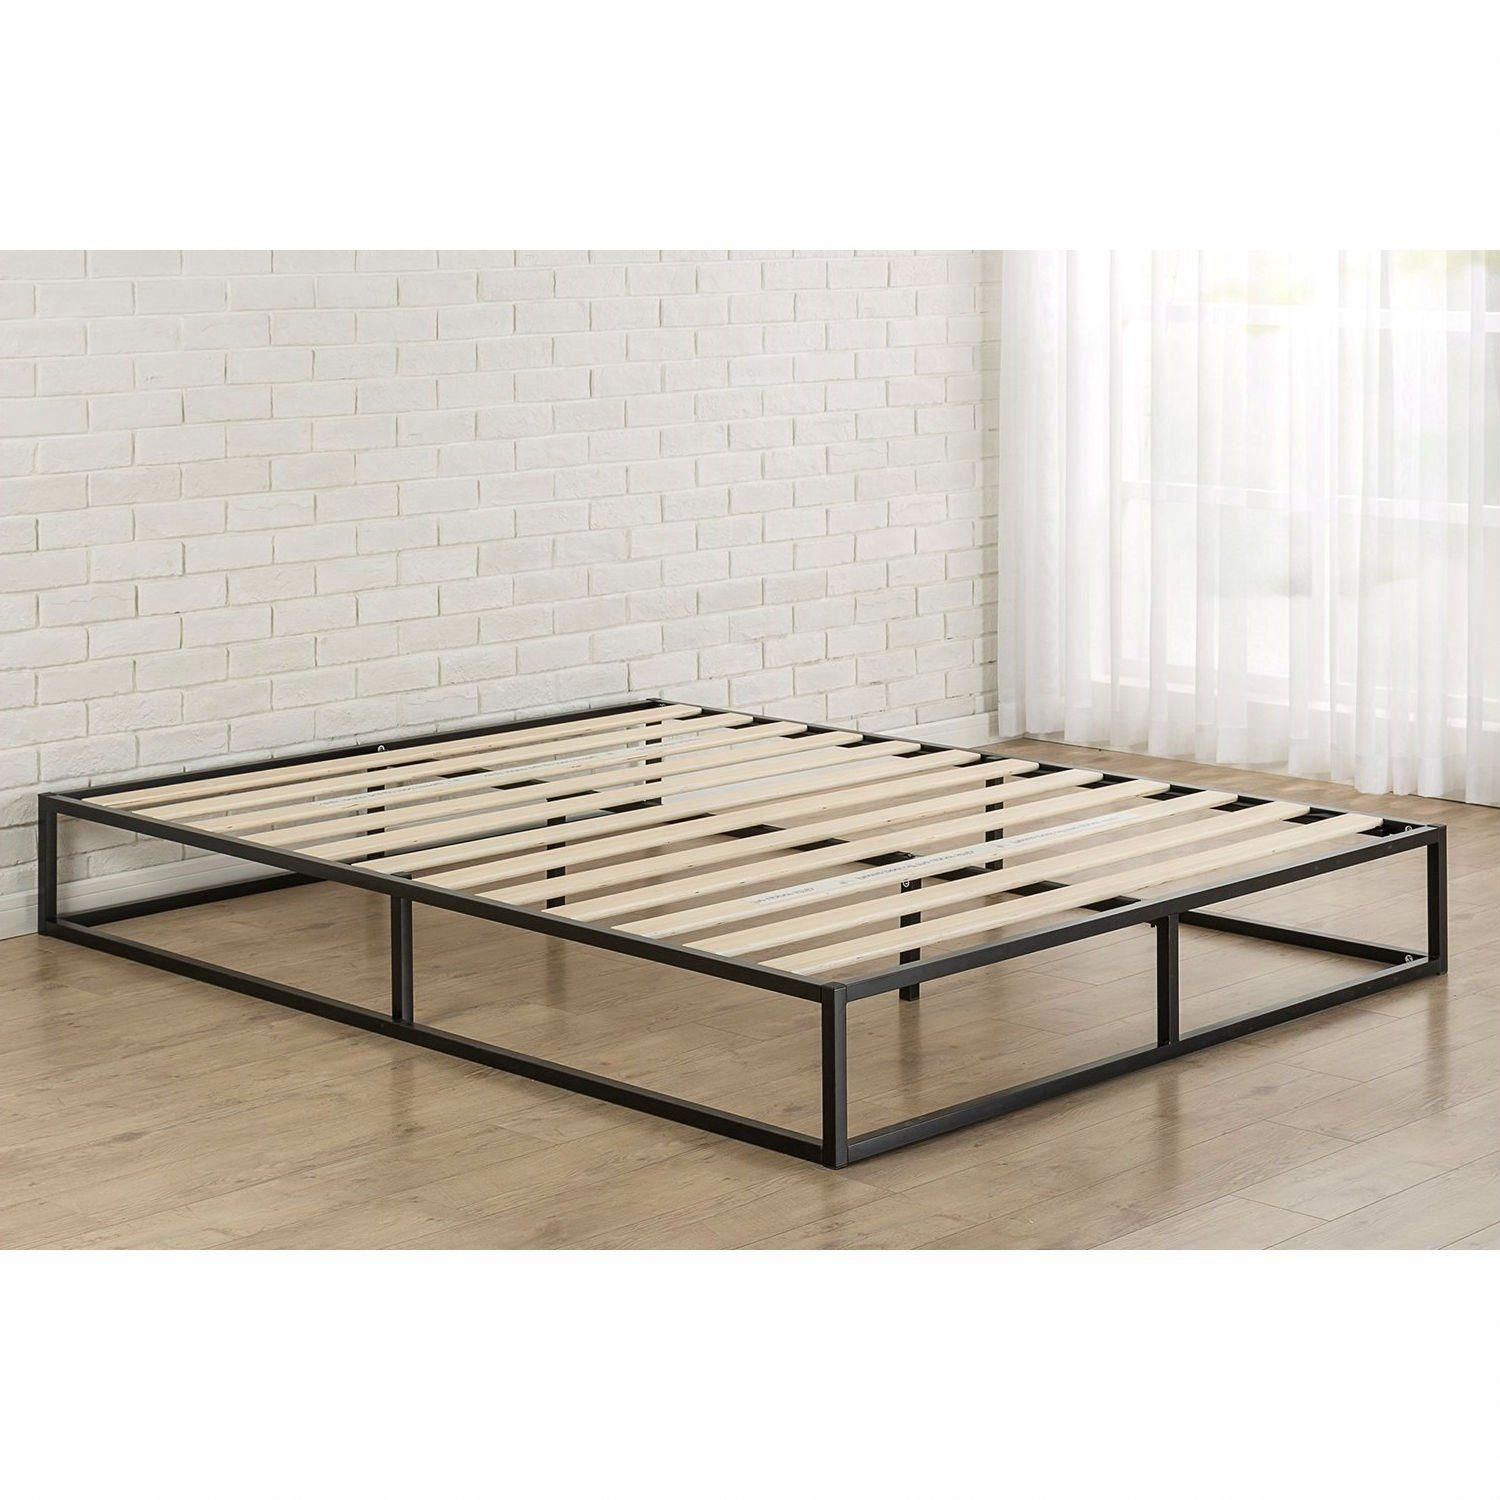 Contemporary Home Furnishings Layout Isn T It Astonishing Popular Is Great Overly In The Effective Metal